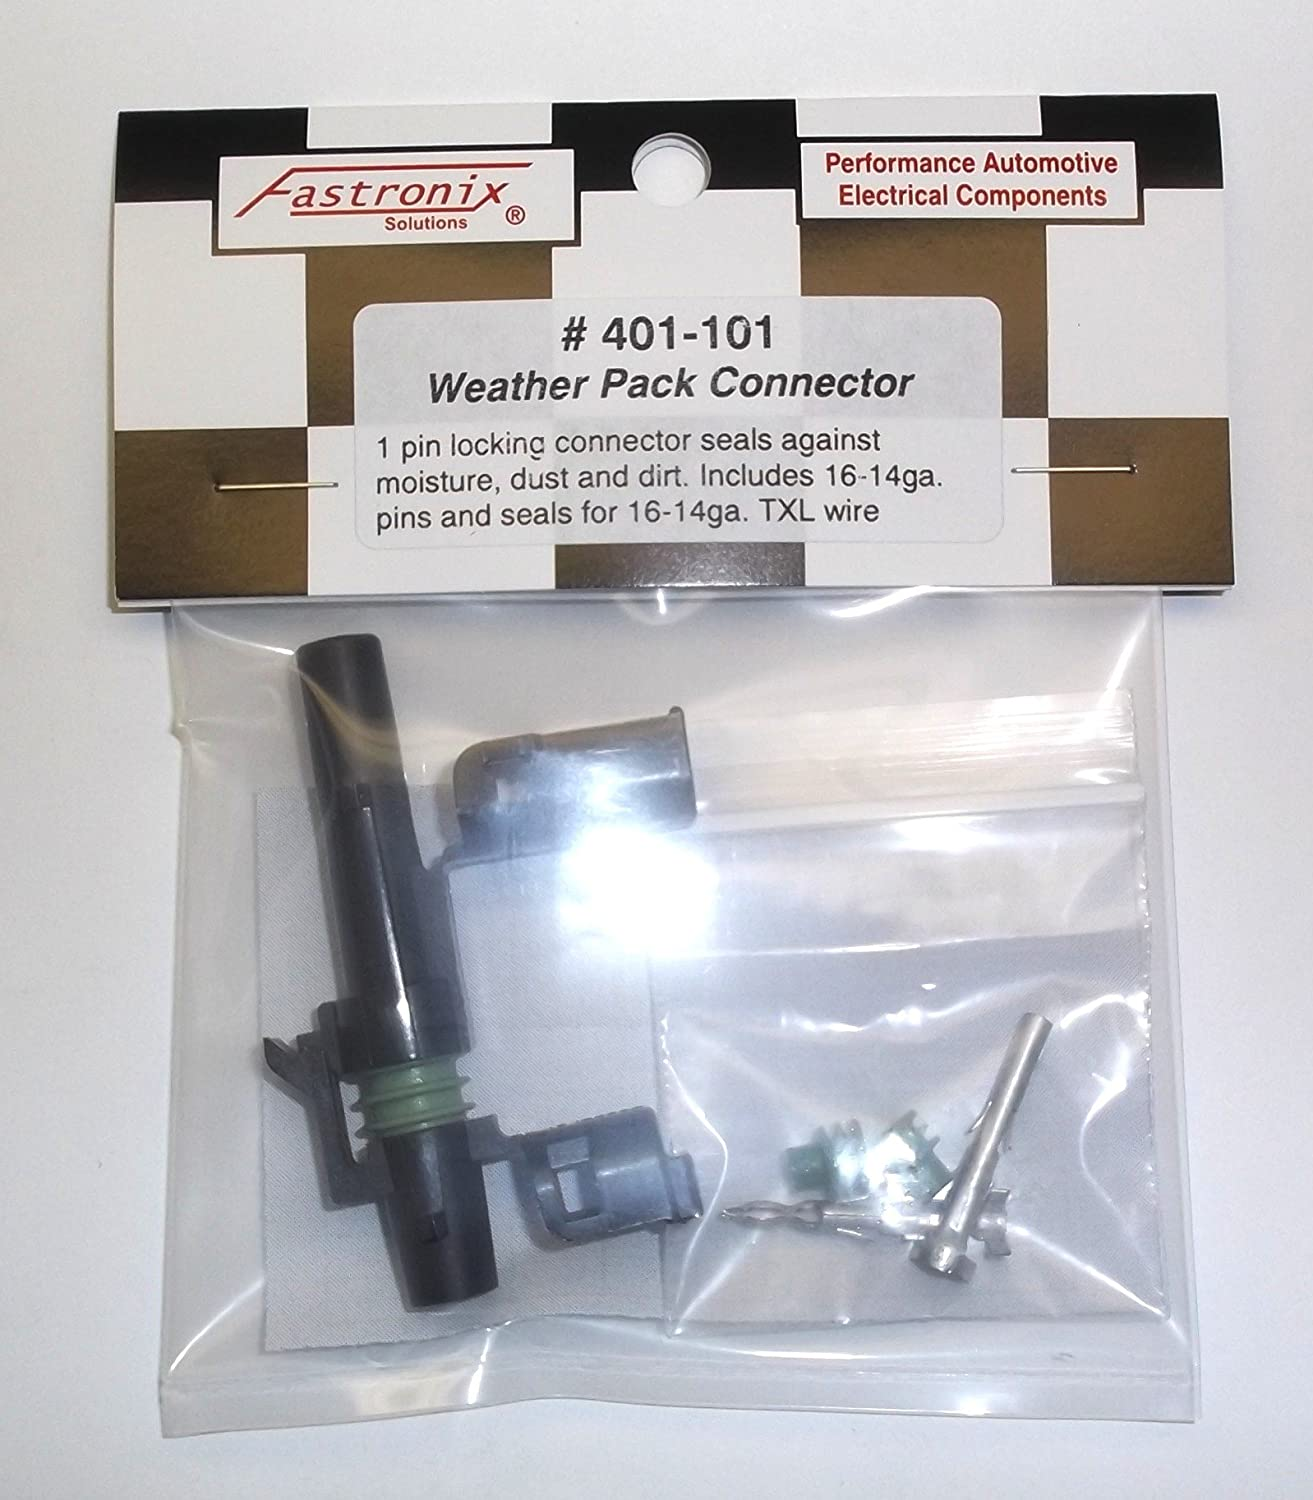 4-Pin Fastronix Weather Pack Connector Kit Fastronix Solutions 4350421961